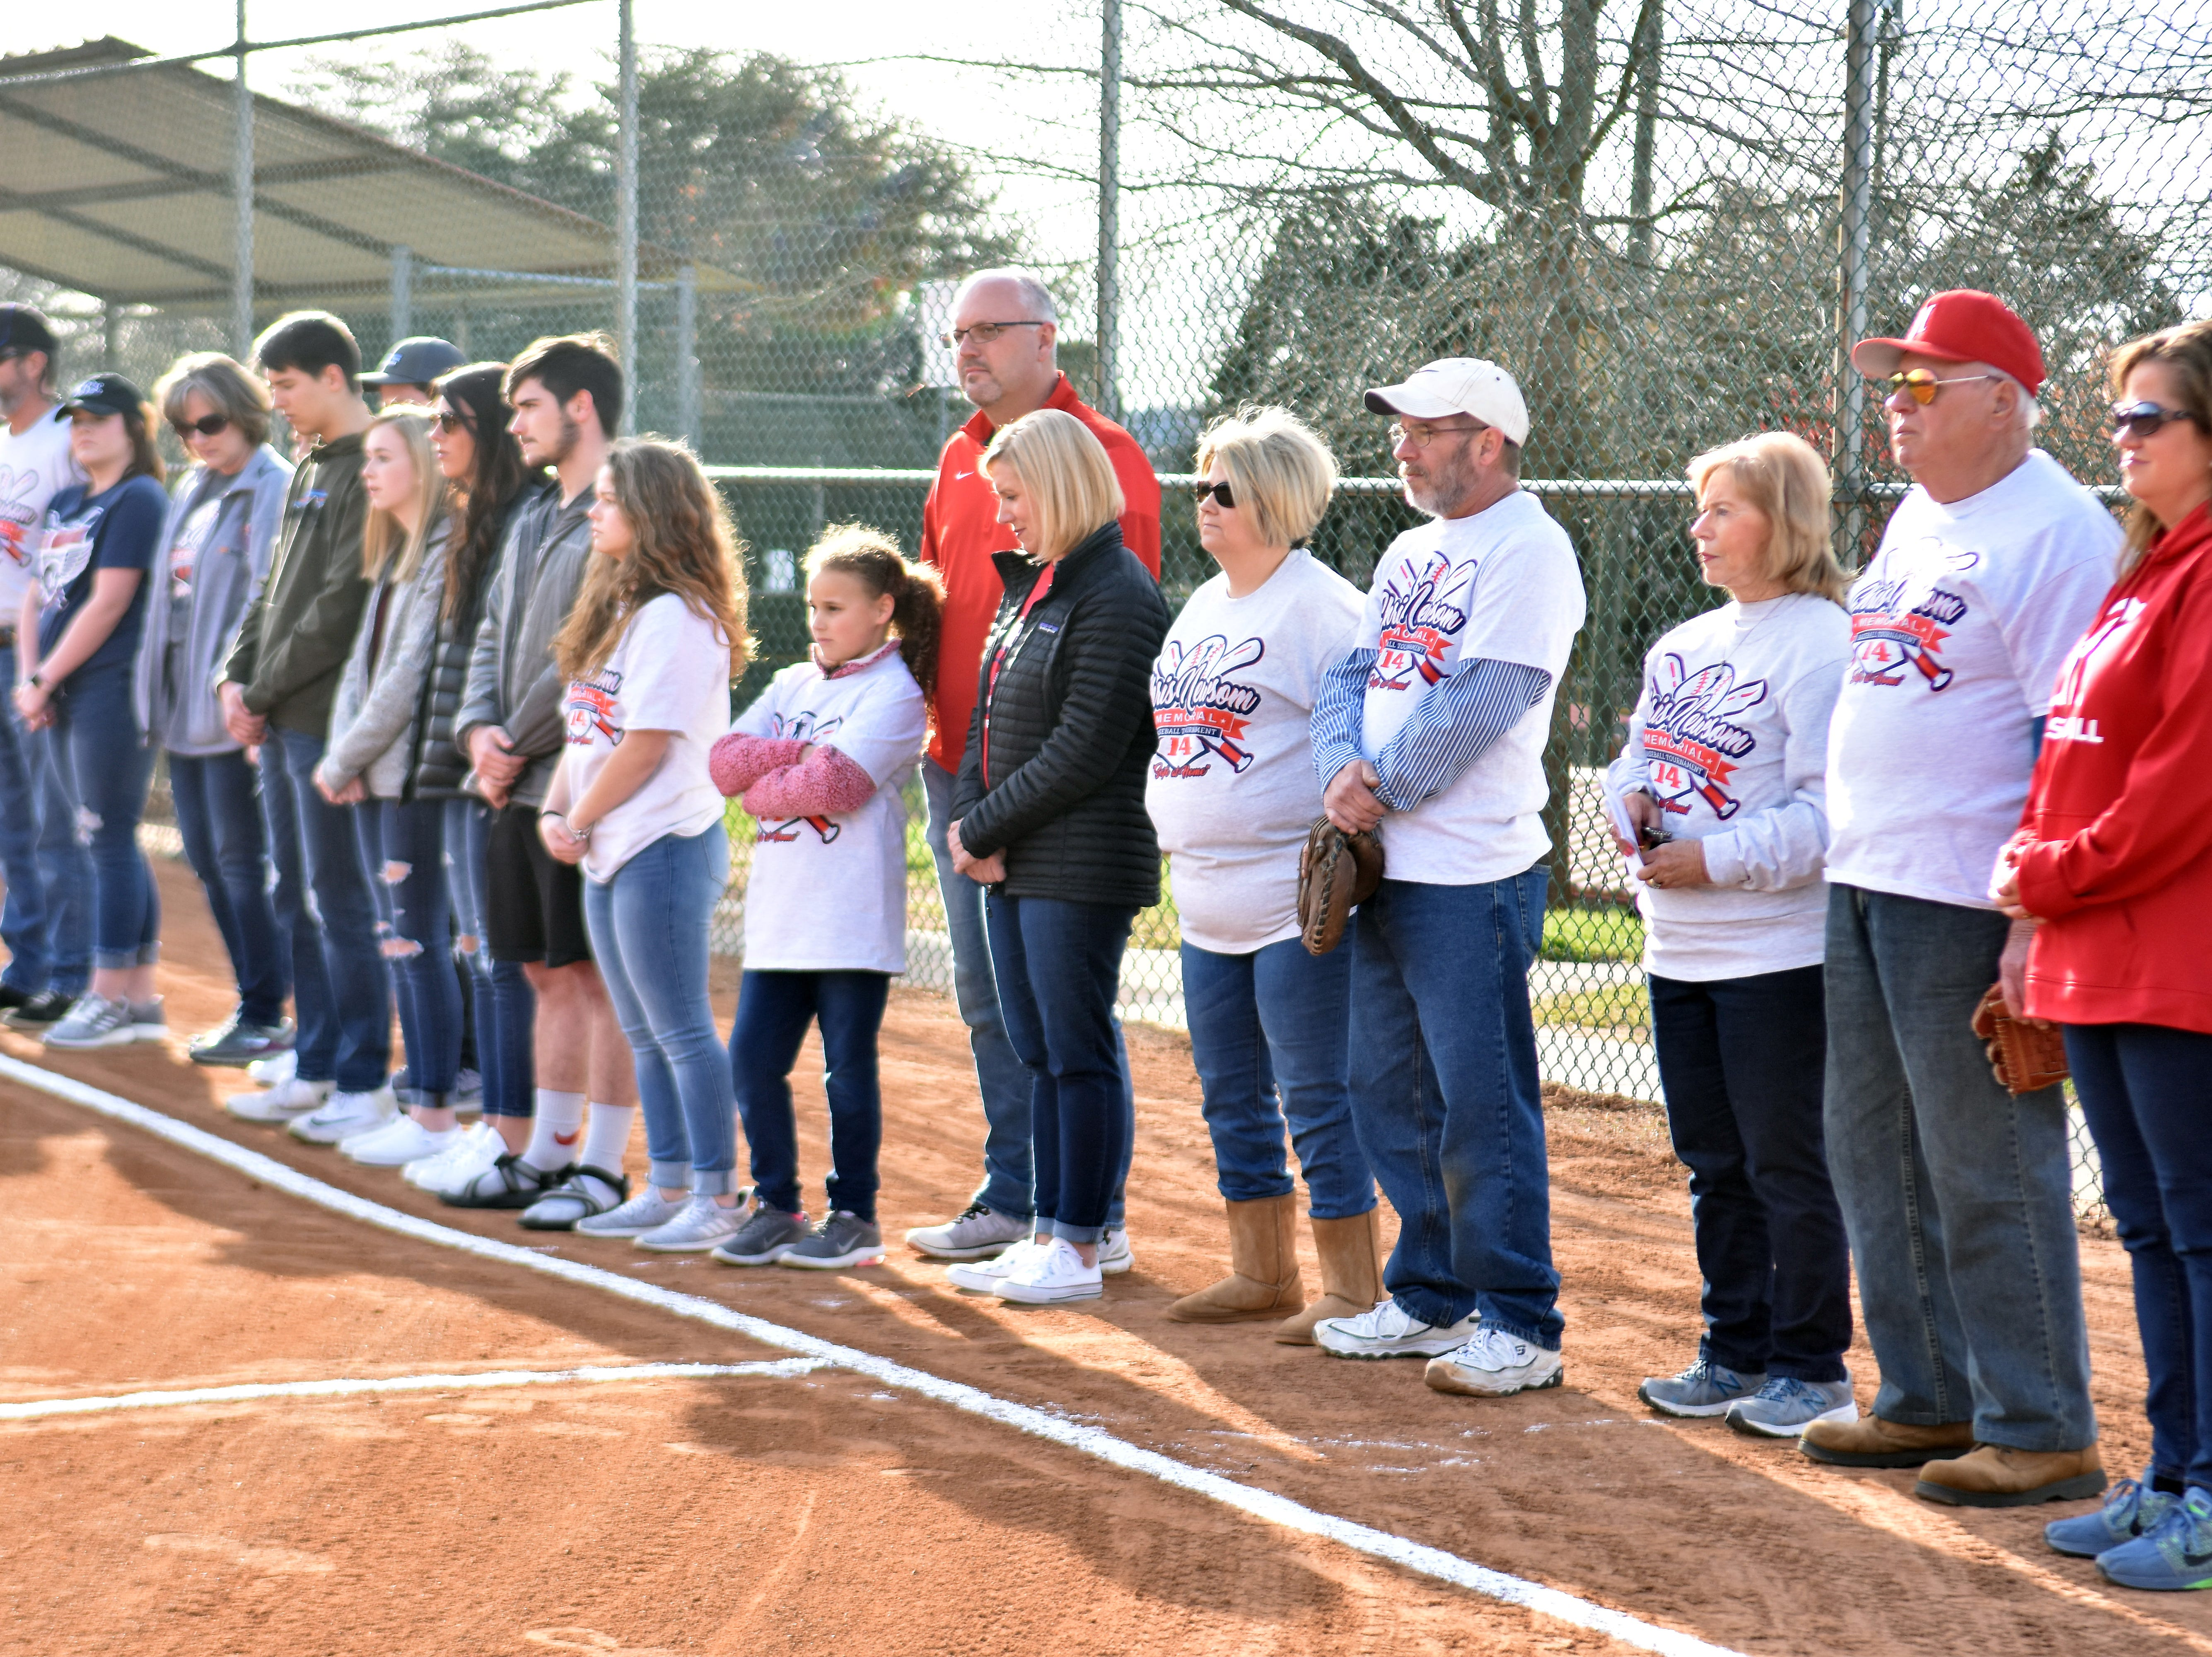 The Newsom family gathered along the first base line at Halls Community Park for the opening of the 2019 Chris Newsom Memorial Tournament.